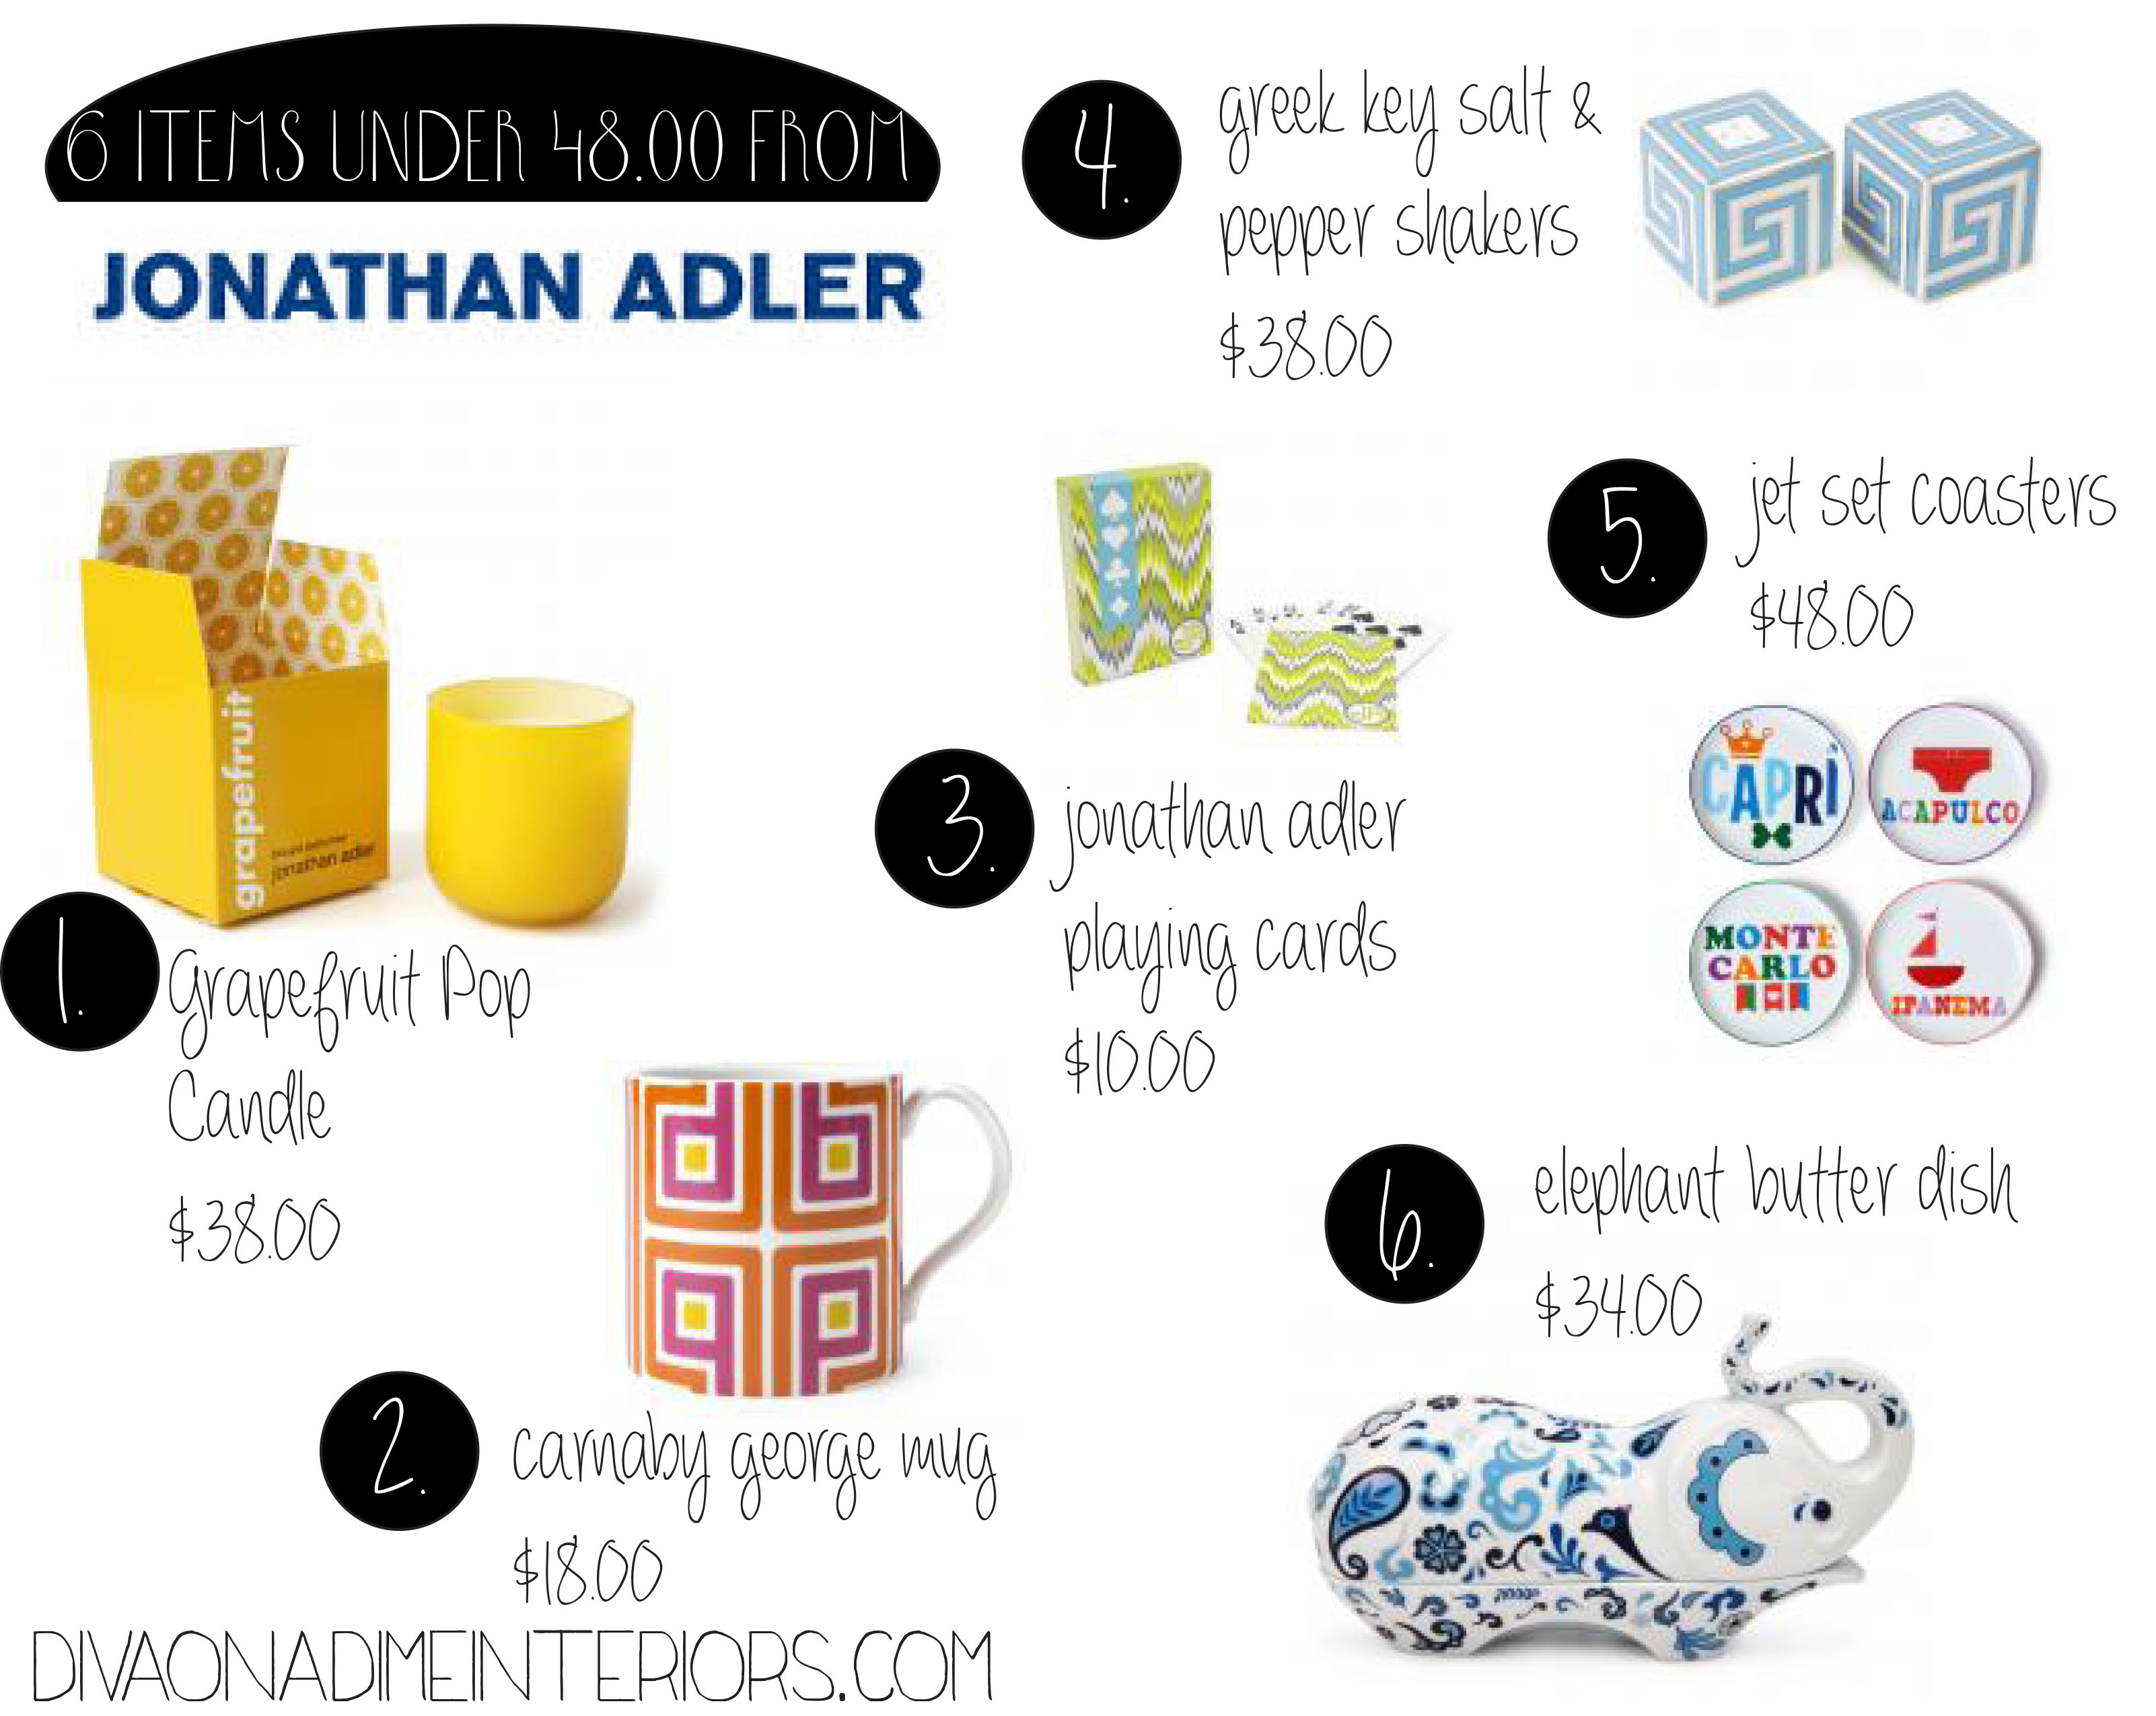 6 Finds under $48.00 From Johnathon Adler